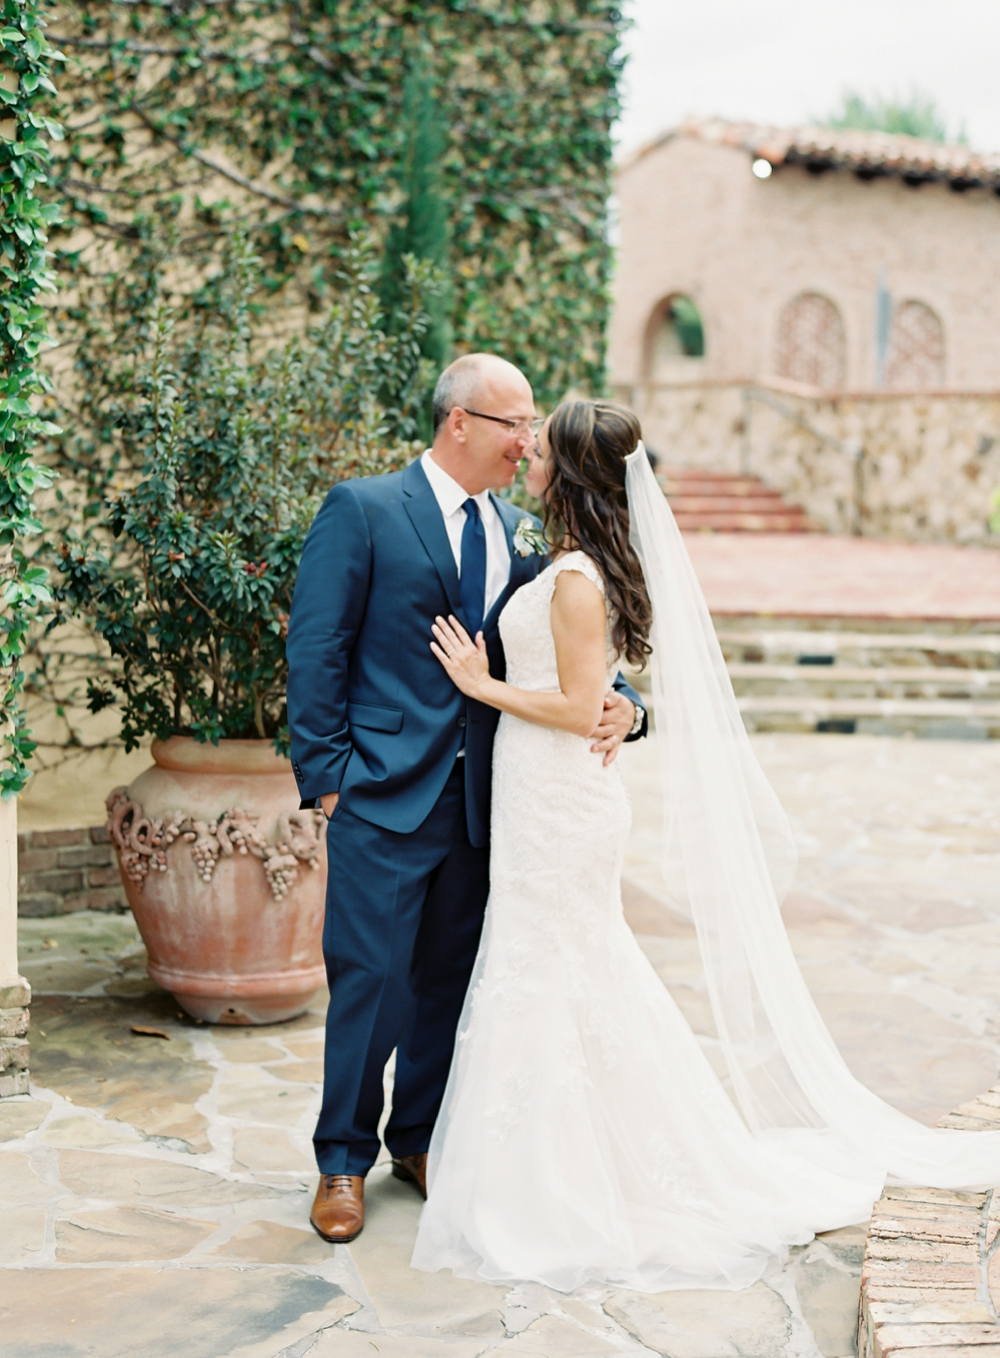 Vicki Grafton Photography - Fine Art Film Wedding Photographer - Bella Collina Wedding_0063.jpg